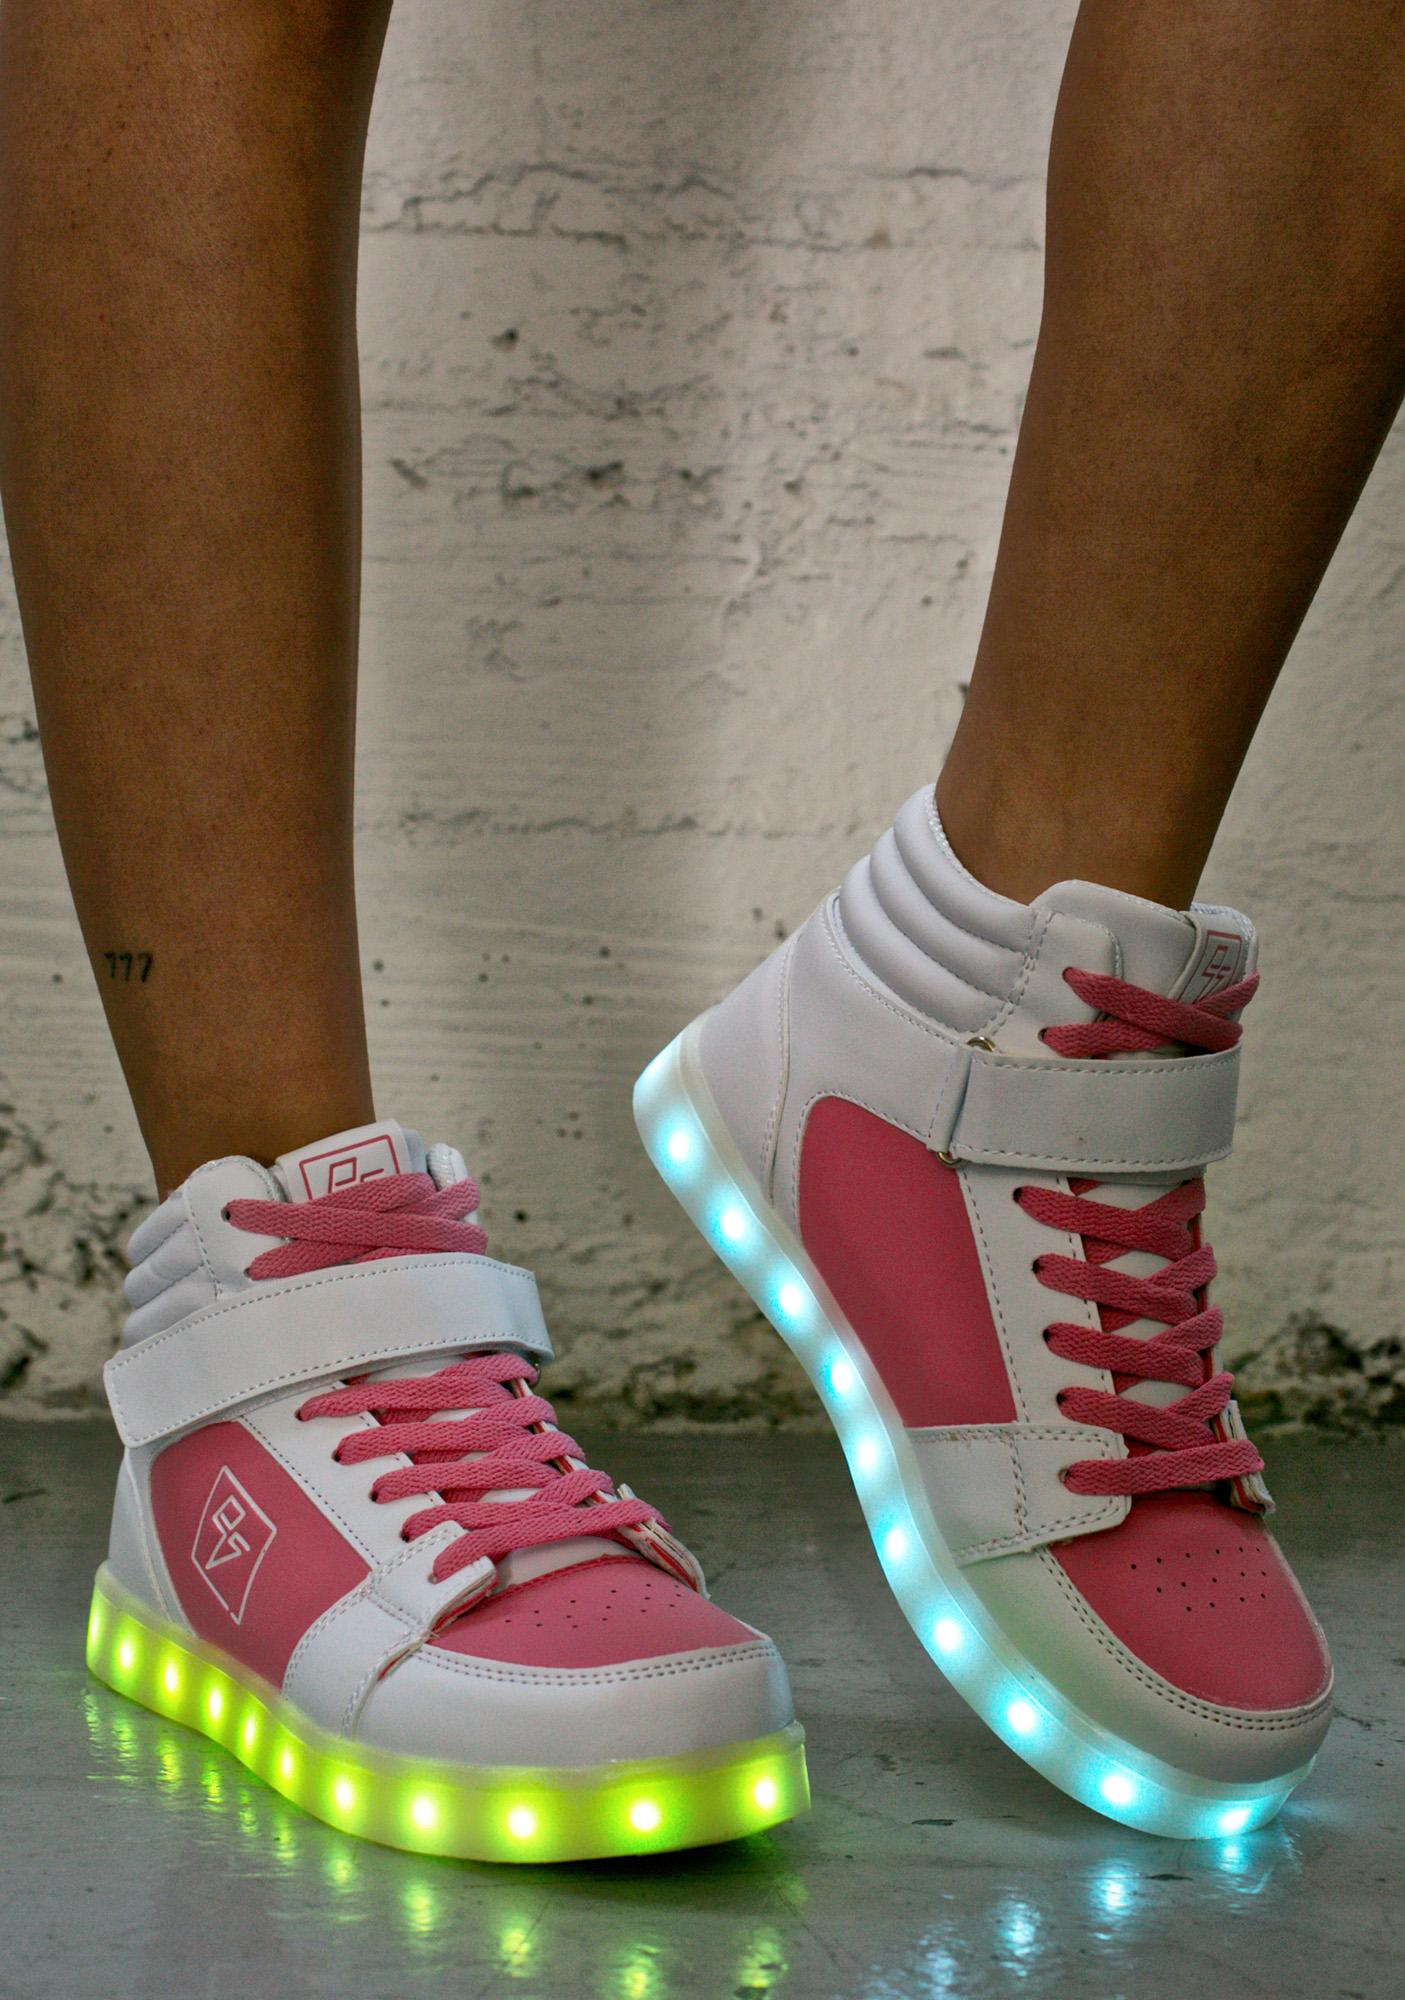 Electric Styles Athena Light Up High Top Shoes